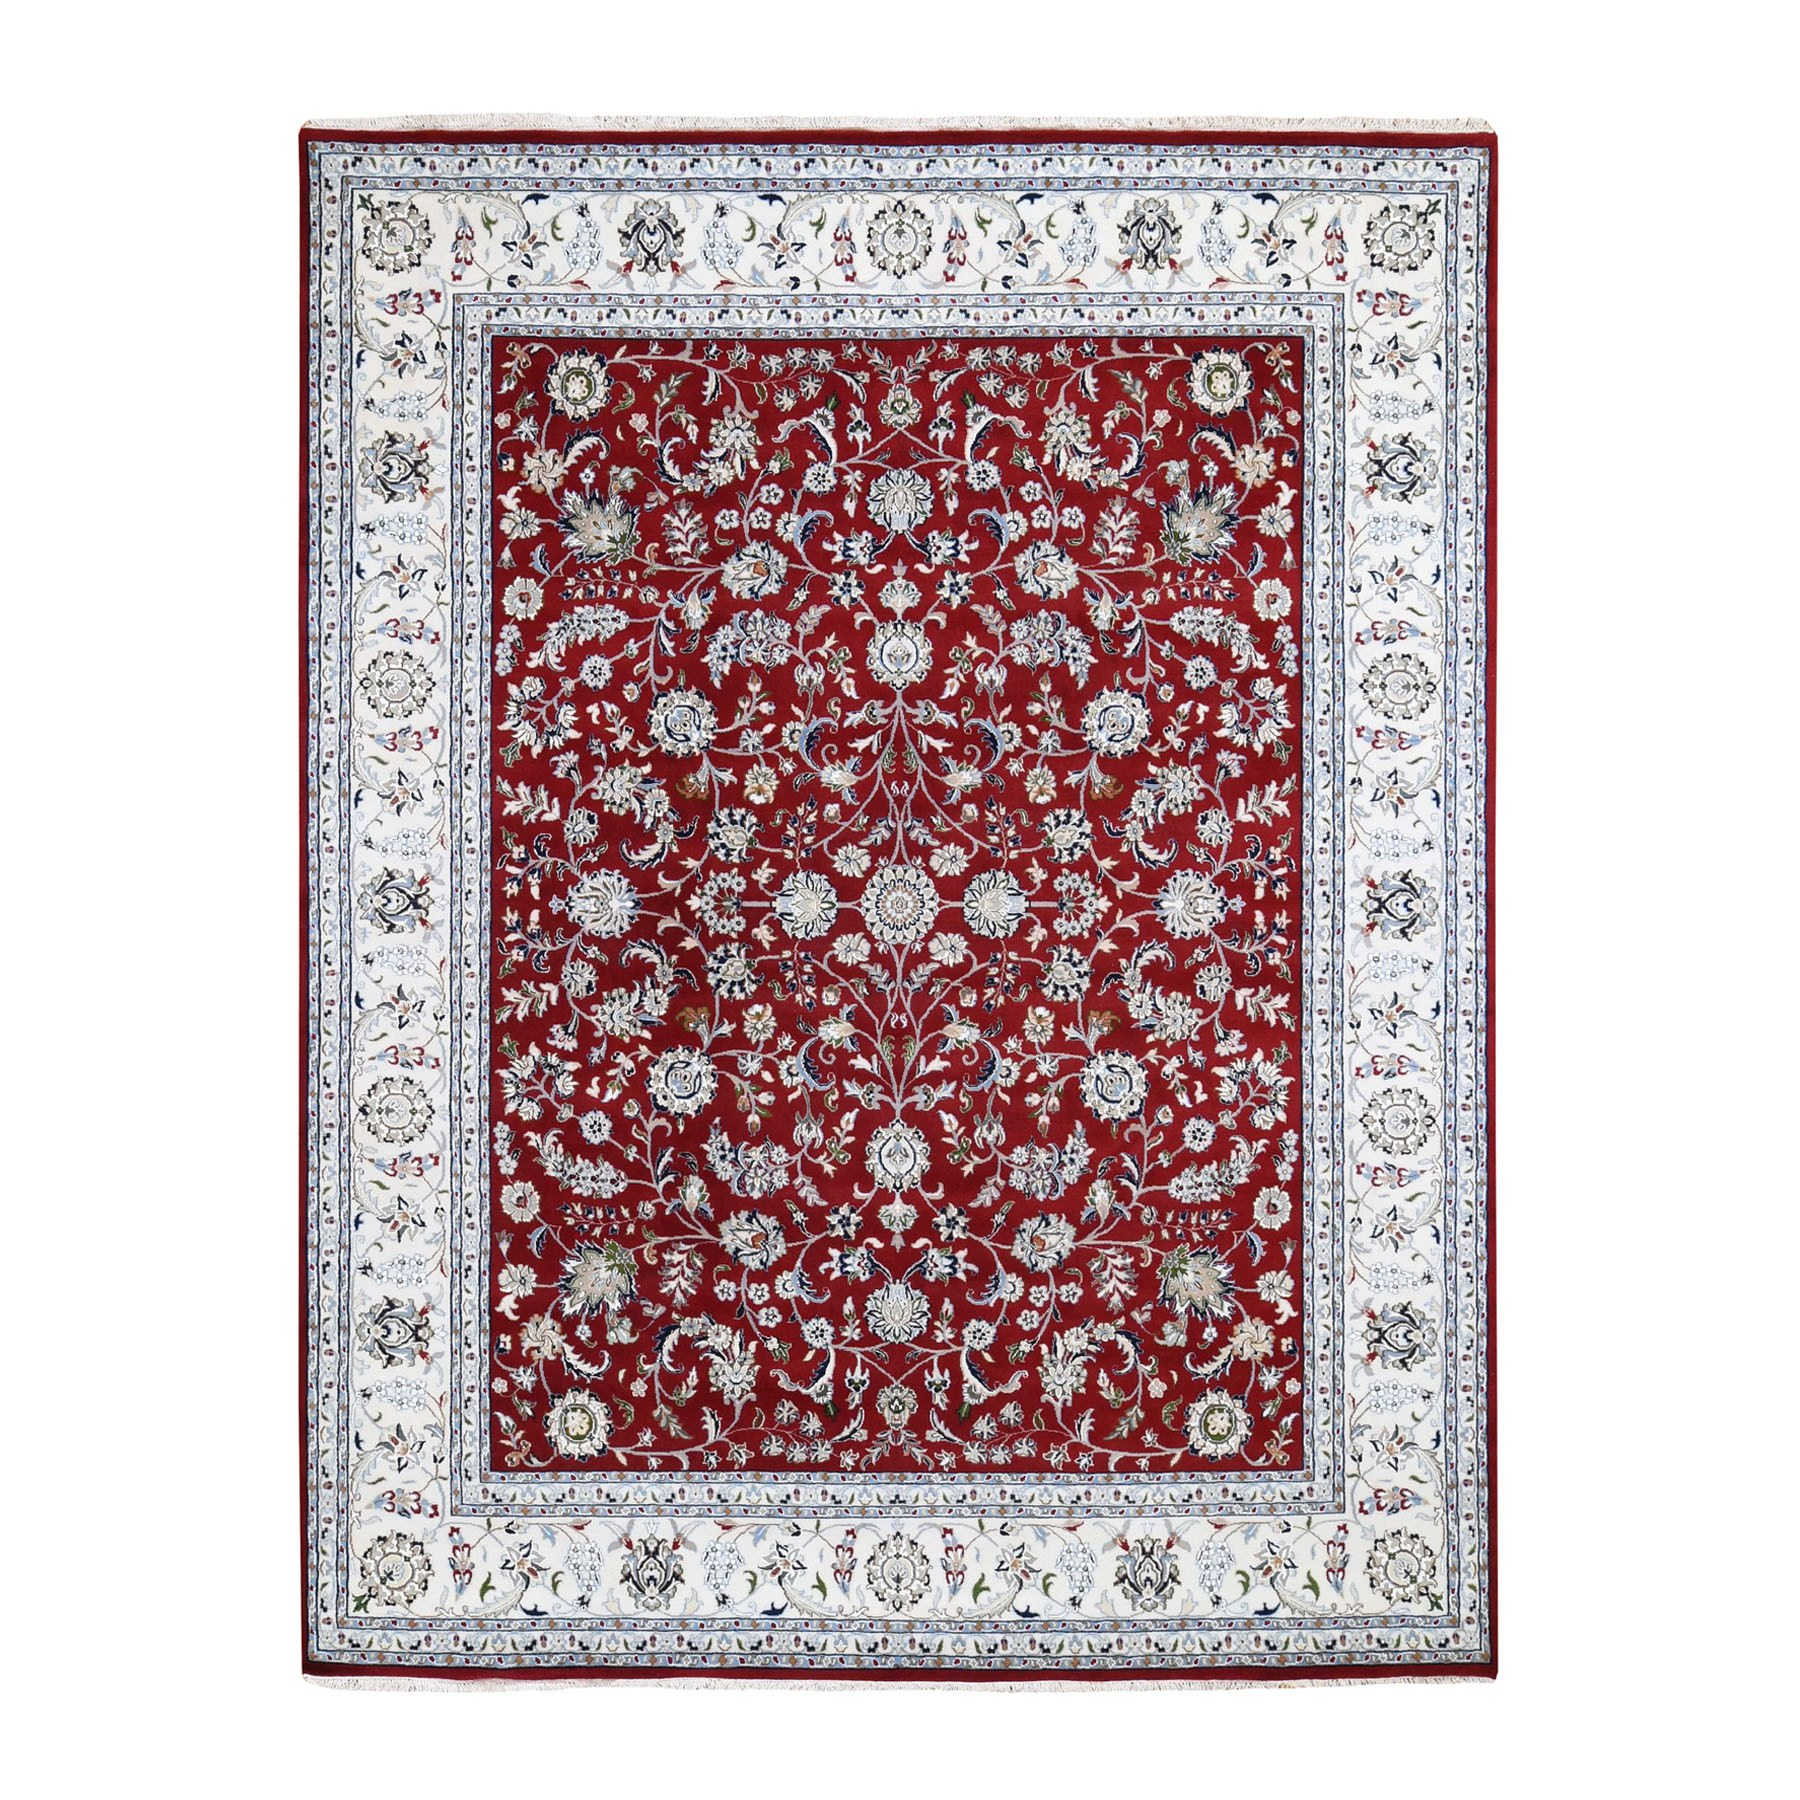 8'x10' Red Wool and Silk All Over Design Nain 250 KPSI Hand Knotted Oriental Rug